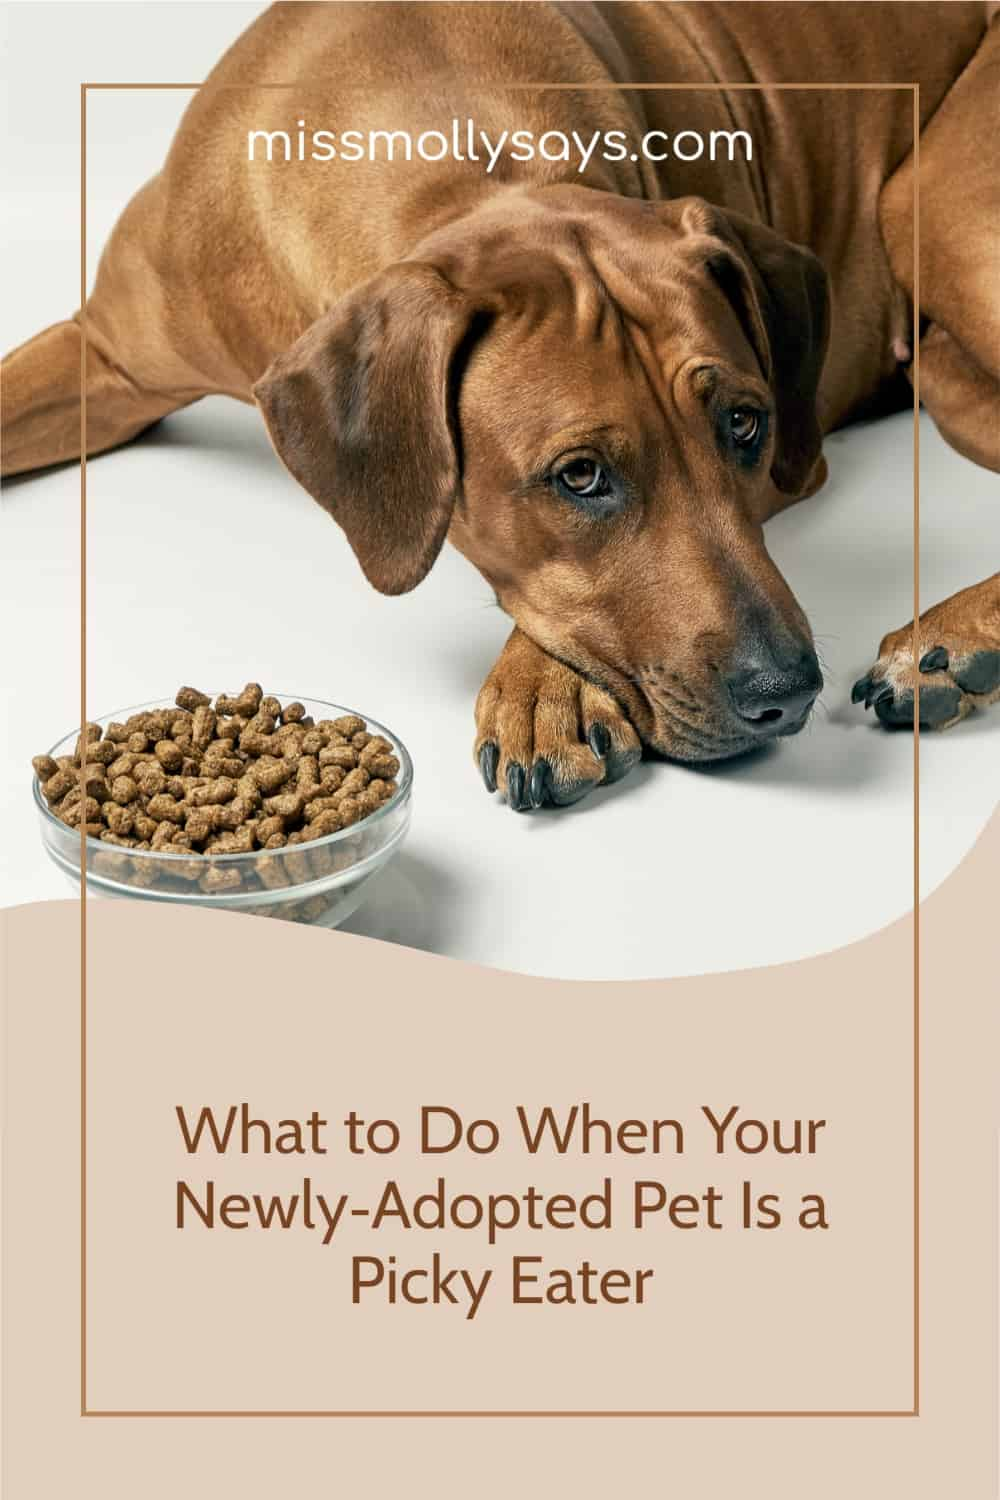 What to Do When Your Newly-Adopted Pet Is a Picky Eater